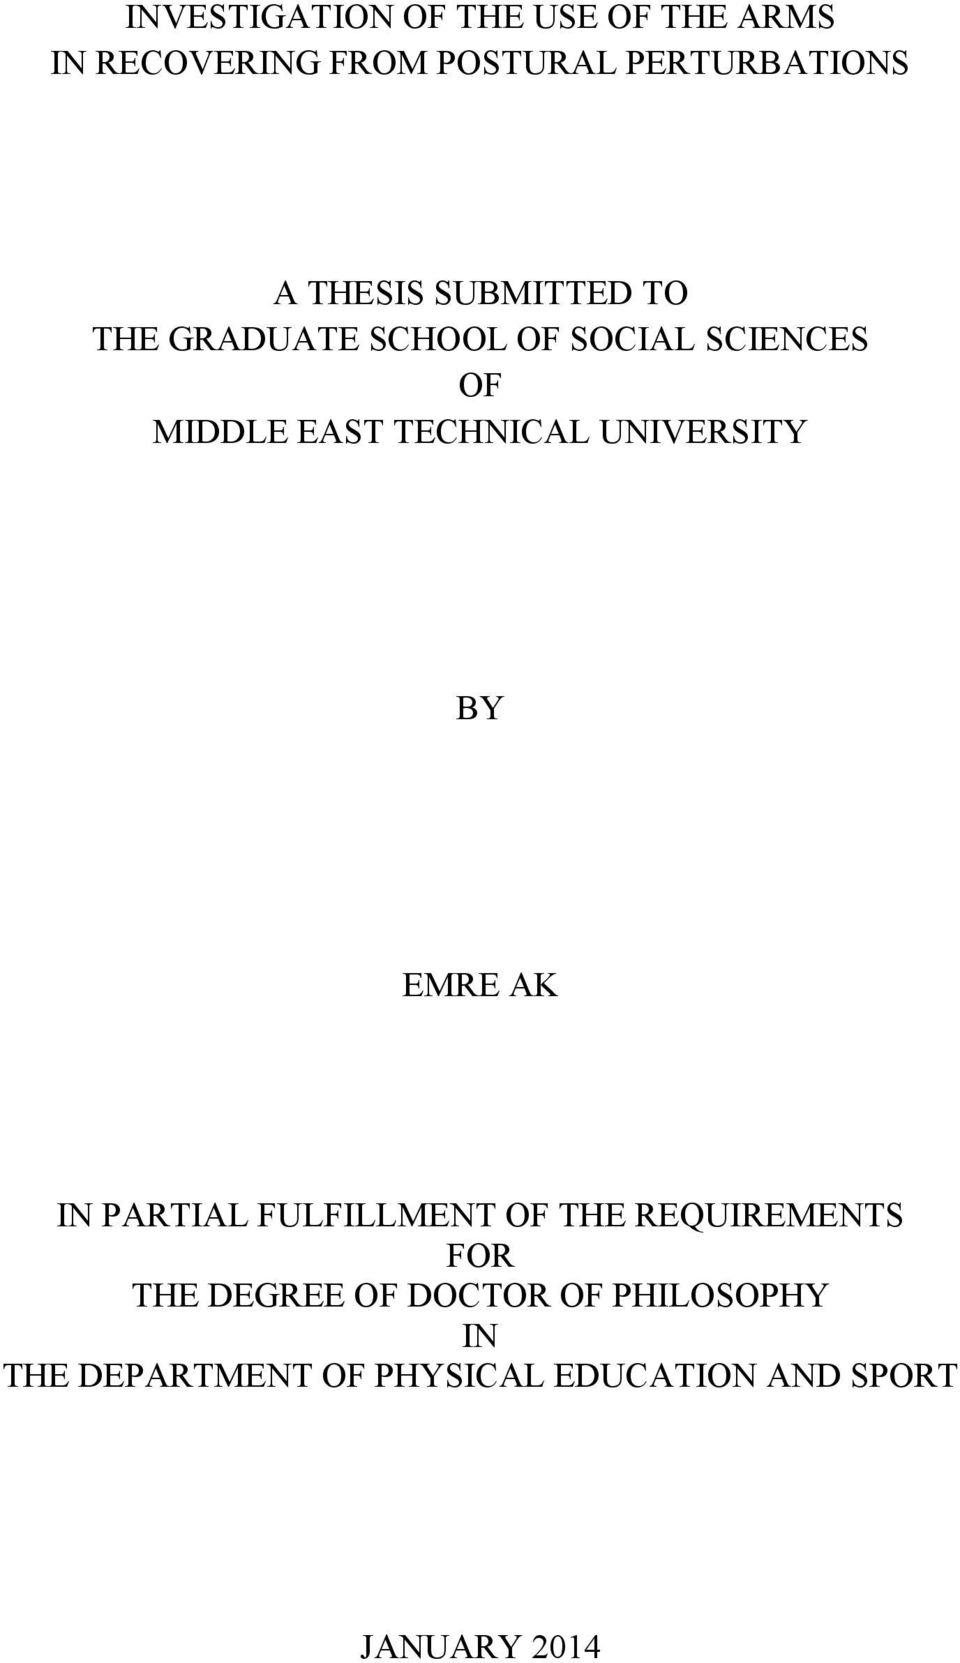 TECHNICAL UNIVERSITY BY EMRE AK IN PARTIAL FULFILLMENT OF THE REQUIREMENTS FOR THE